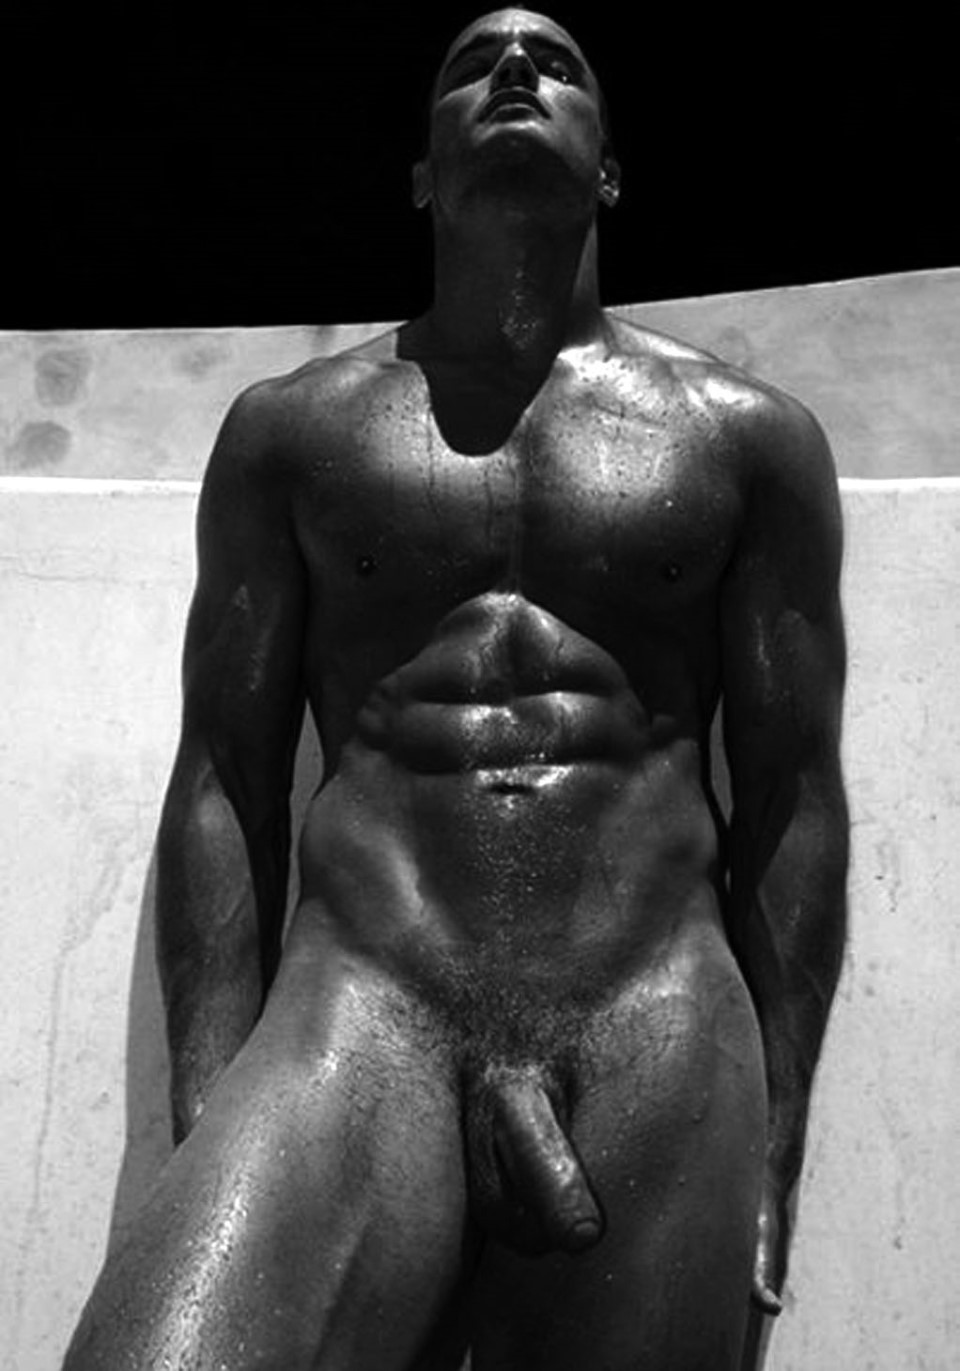 Dieux du Stade 2011 fully naked muscle man